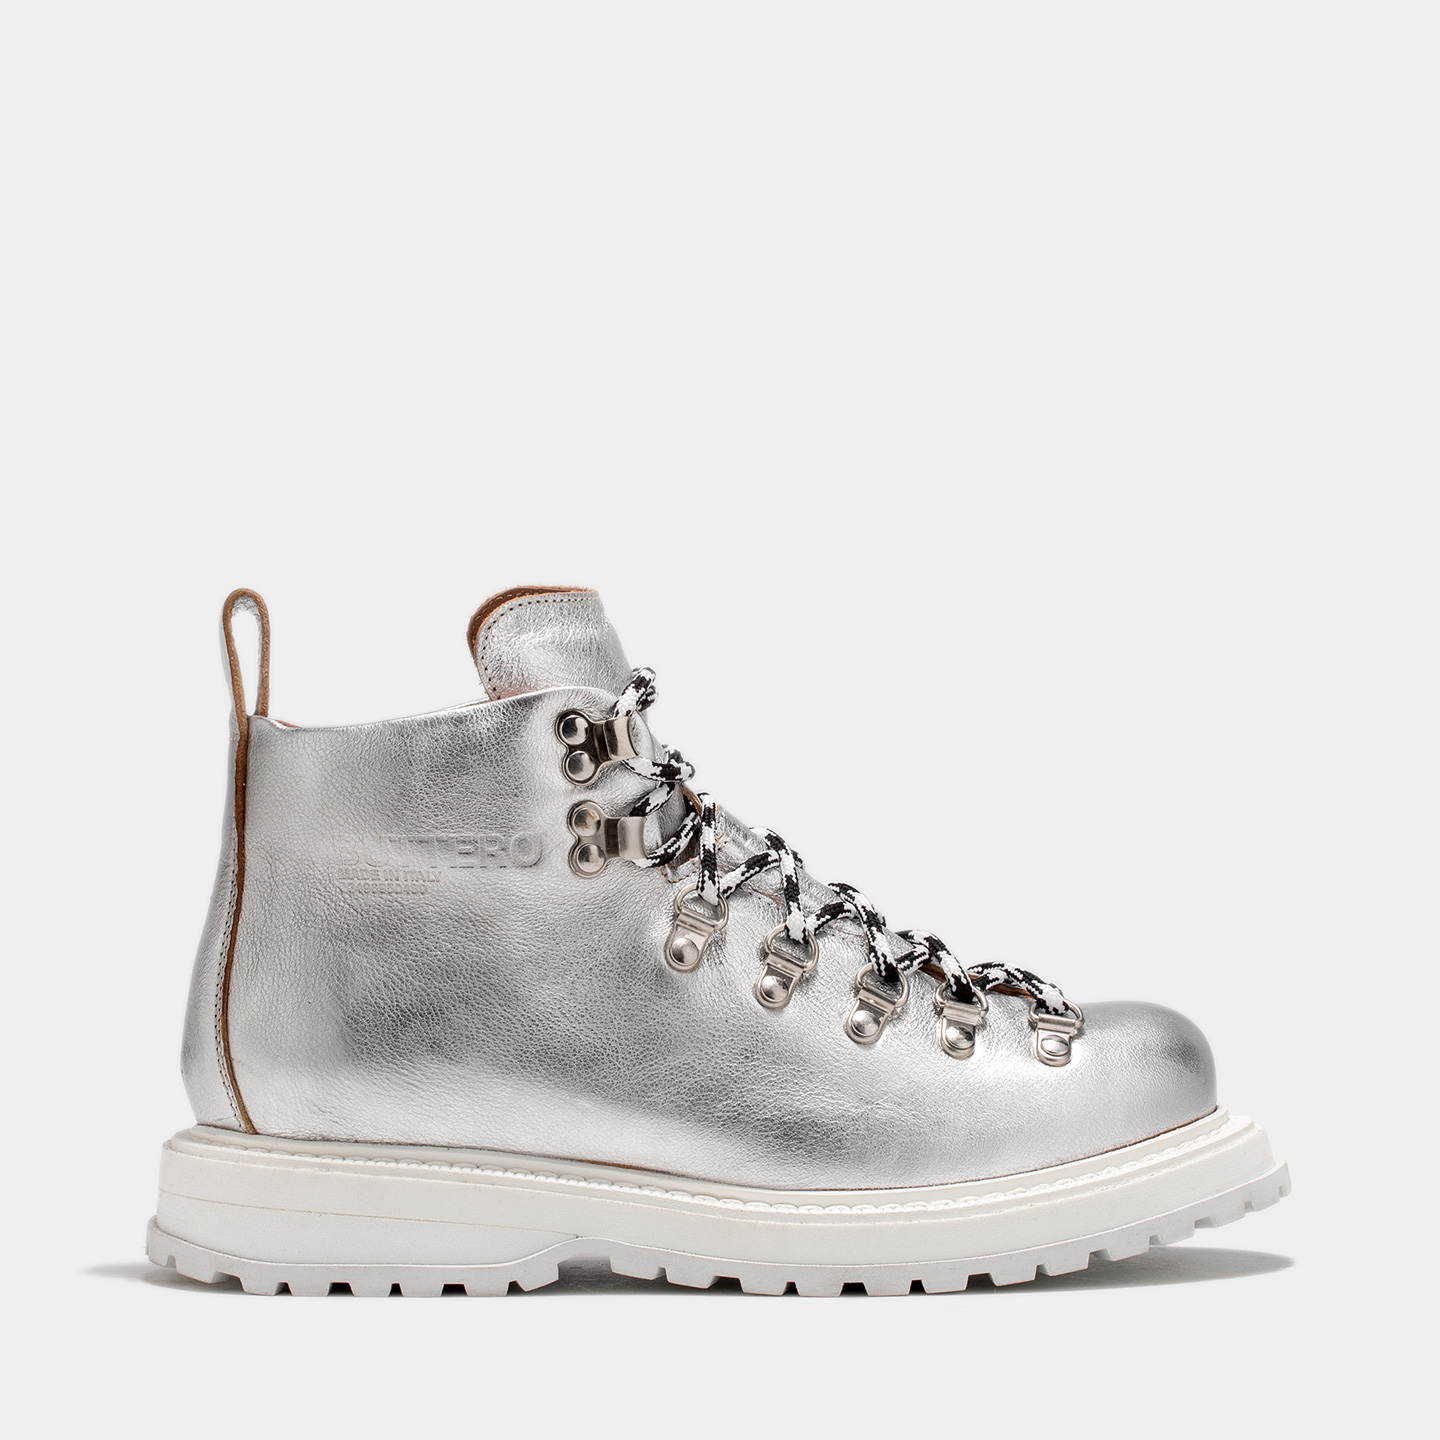 BUTTERO: ZENO HIKING BOOTS IN SILVER TONE LAMINATED LEATHER